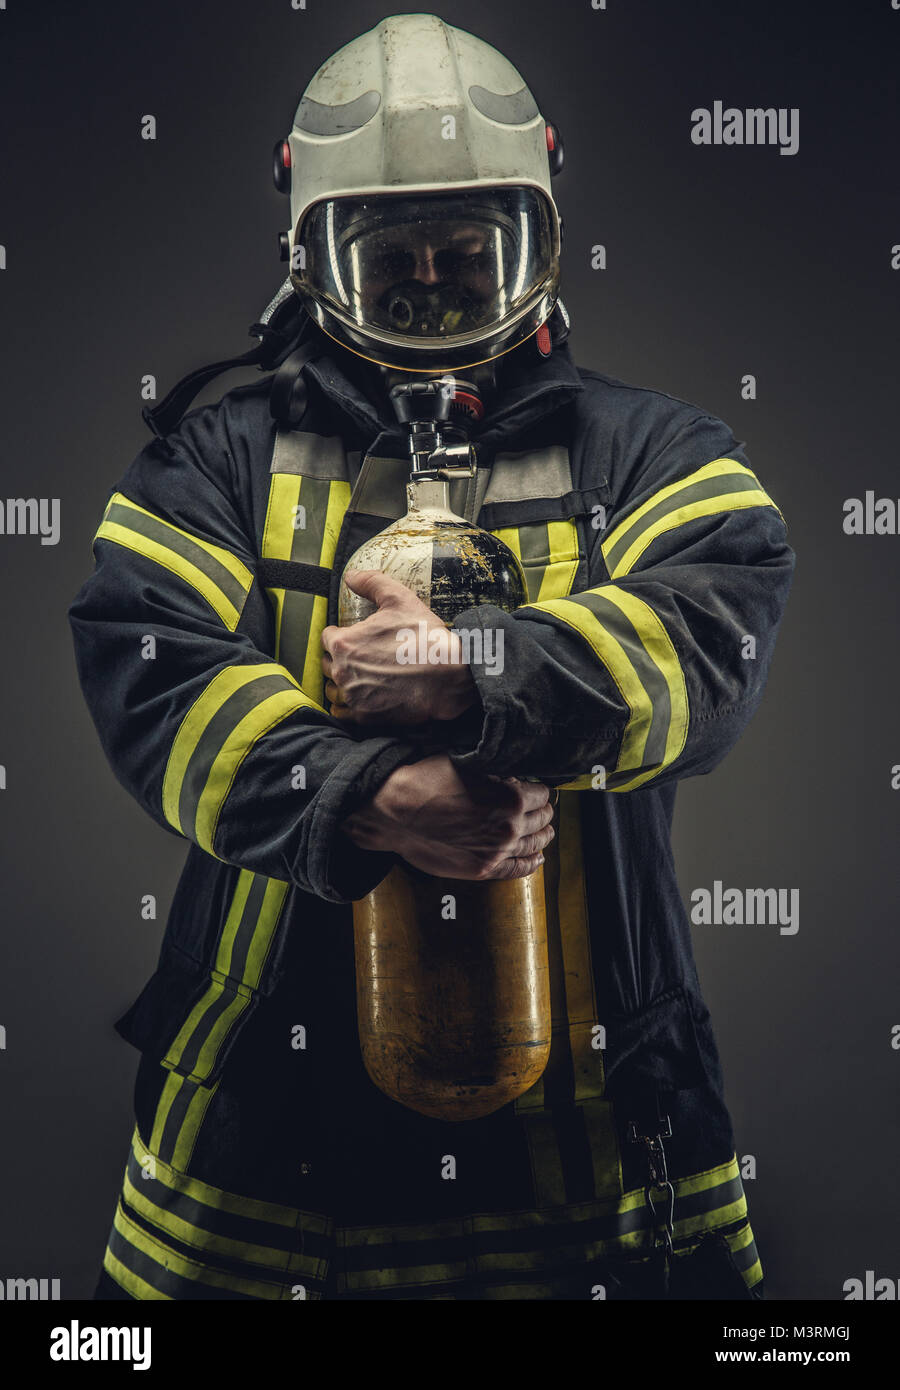 Portrait of firefighter in safety uniform. - Stock Image